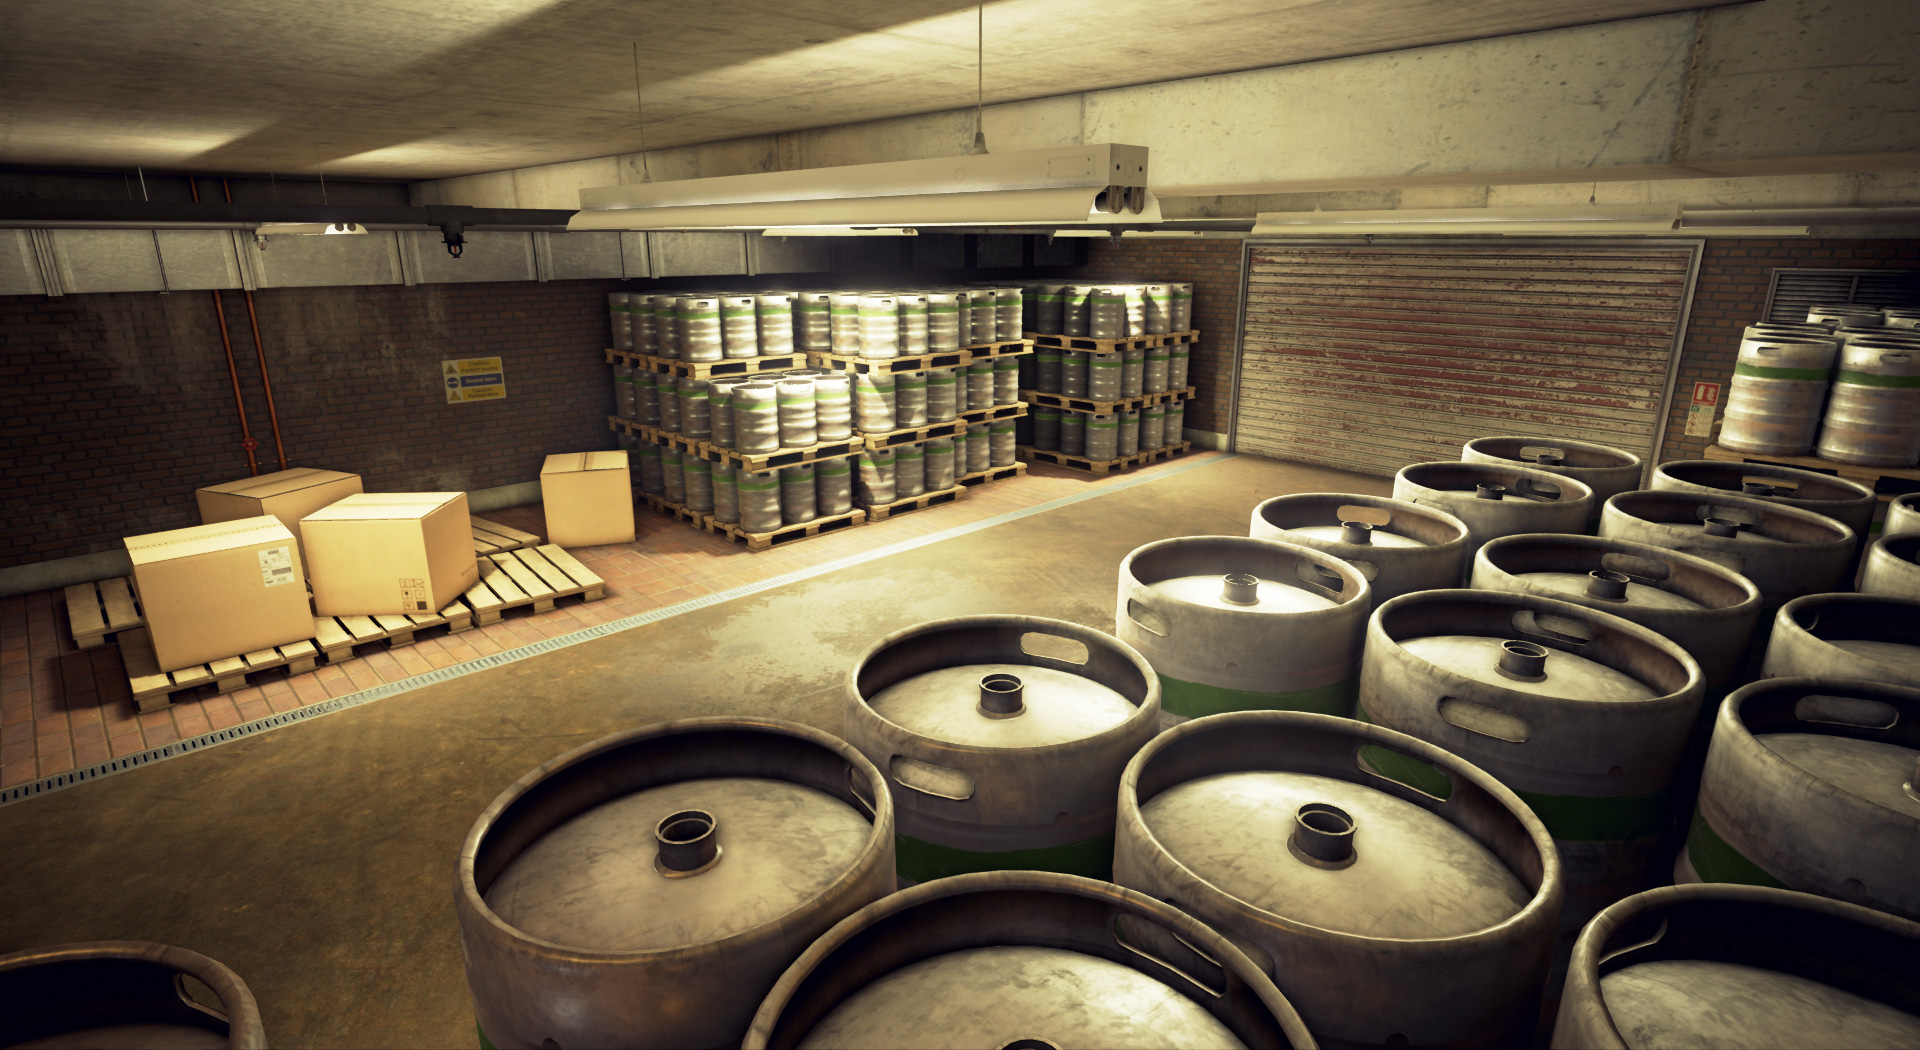 unreal 4 brewery screenshot 06